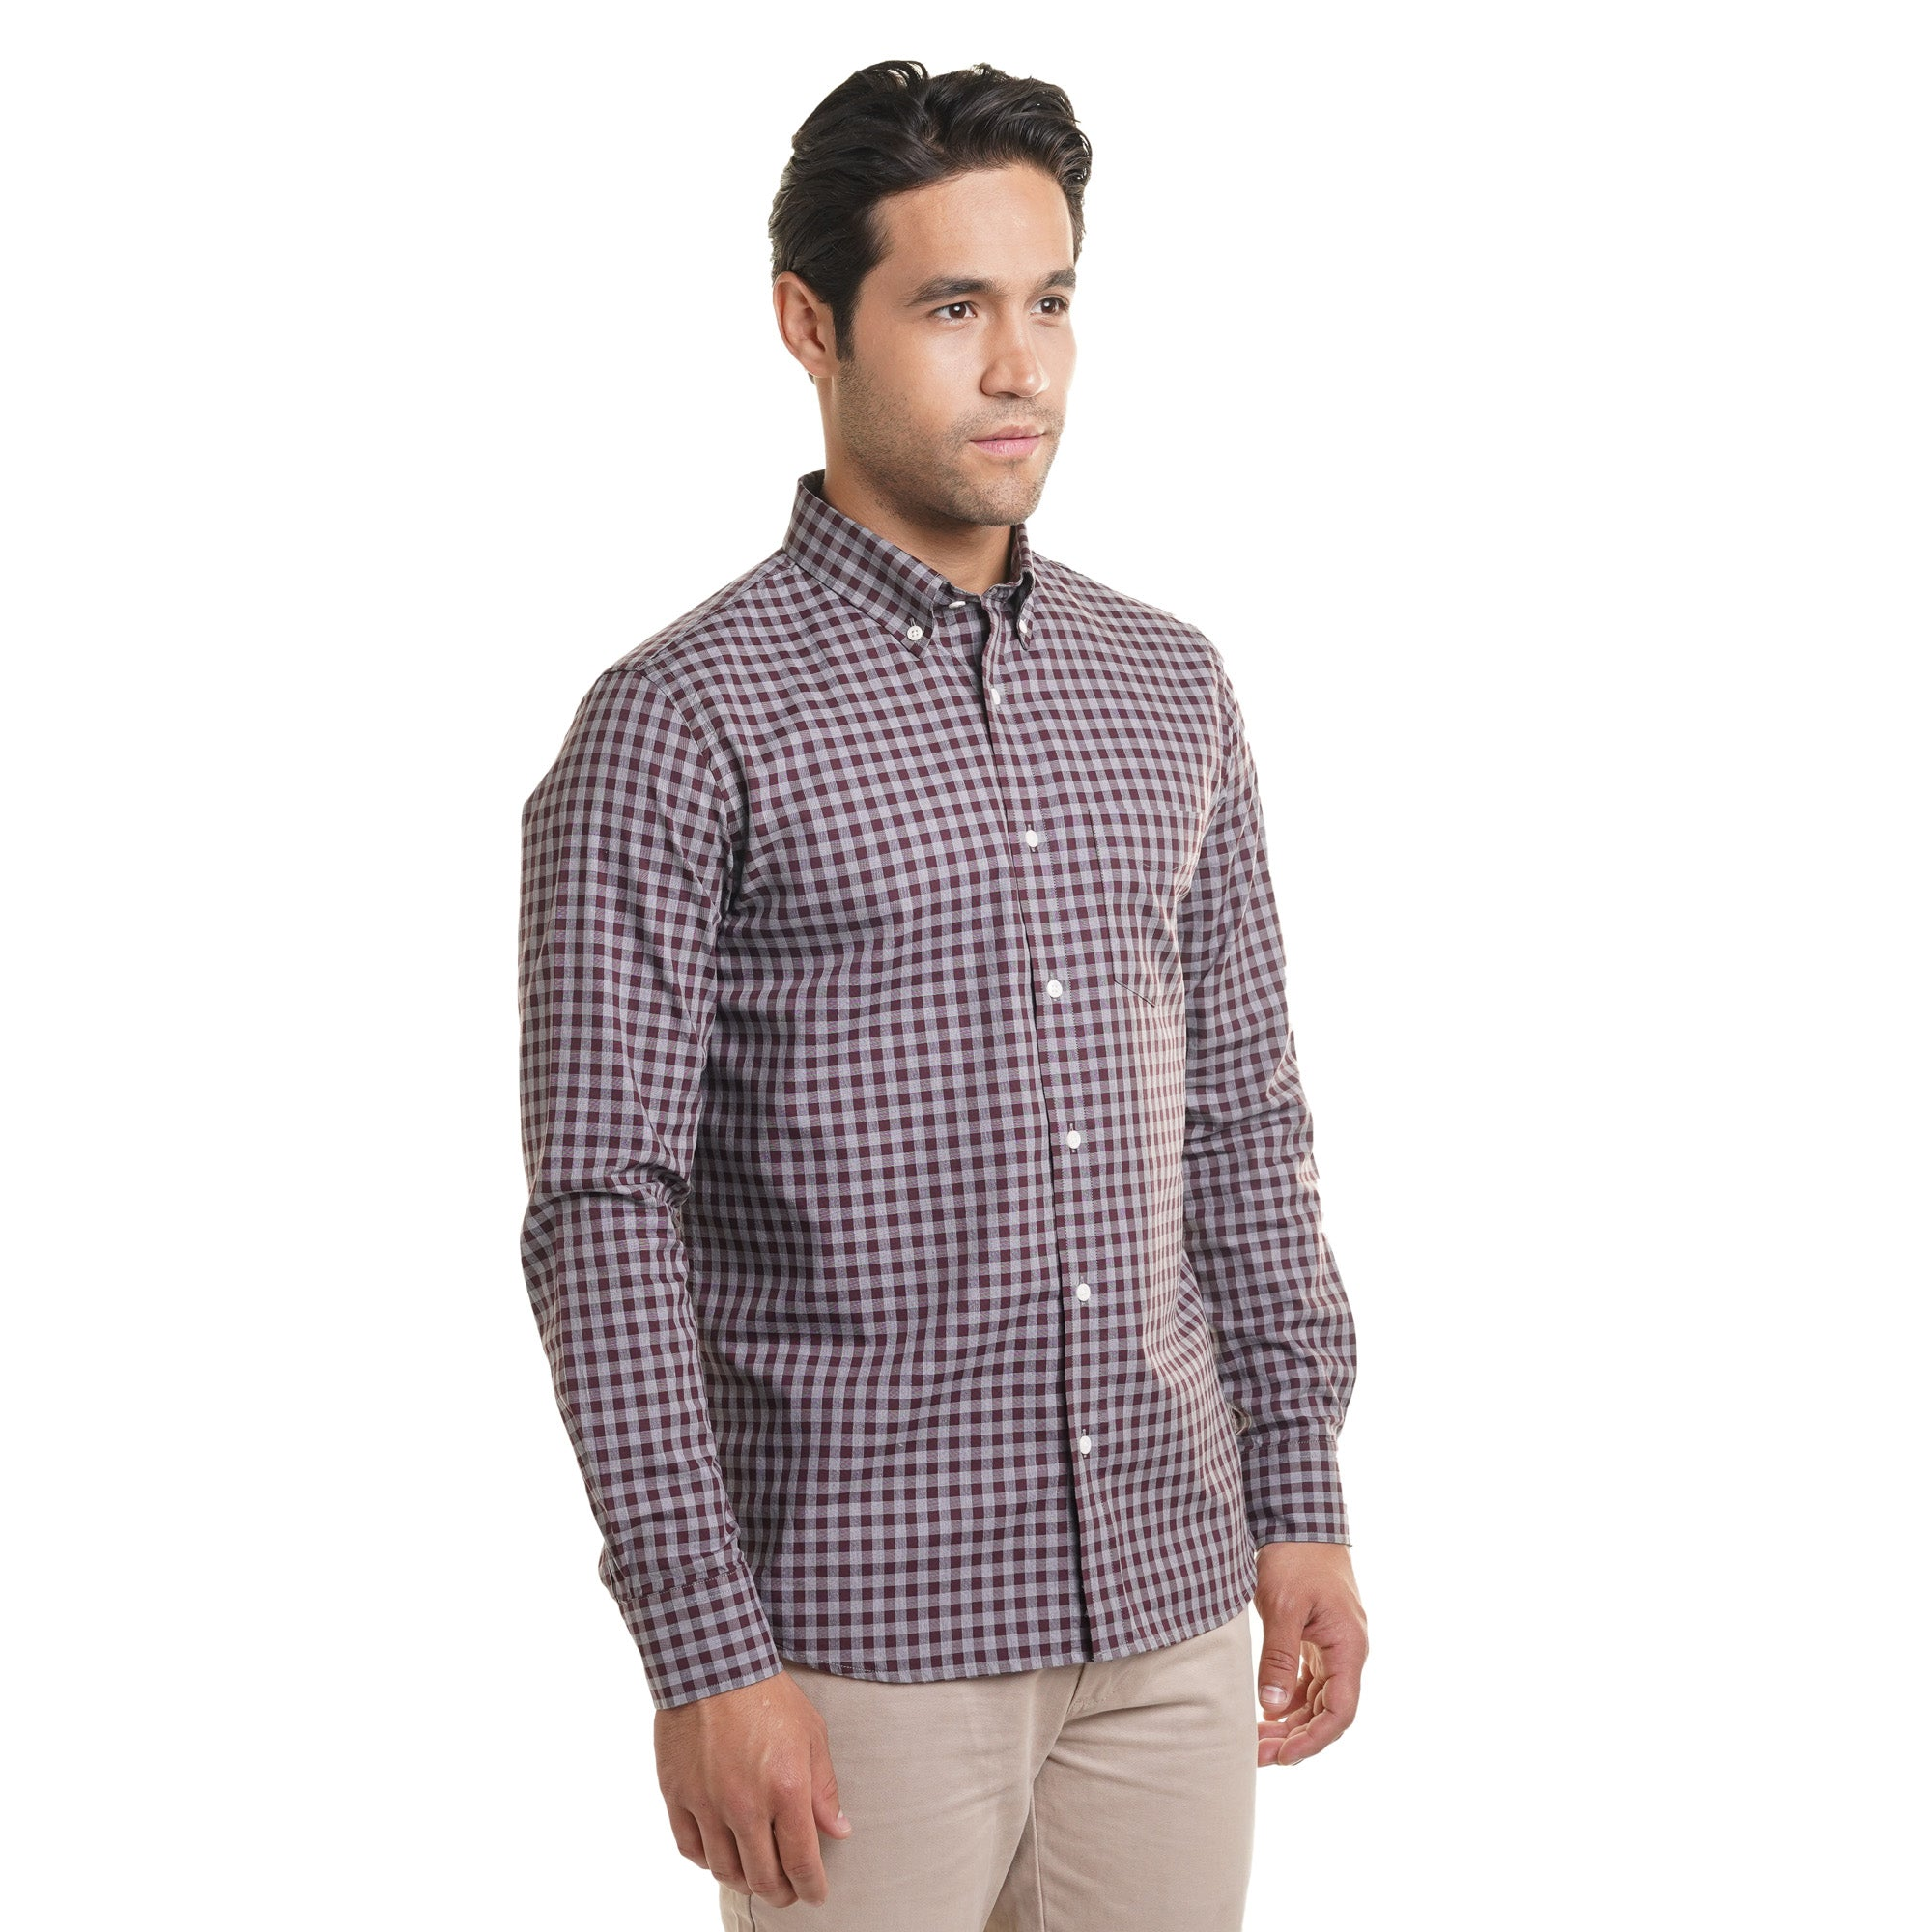 Everyday Oxford - Burgundy Grey Gingham